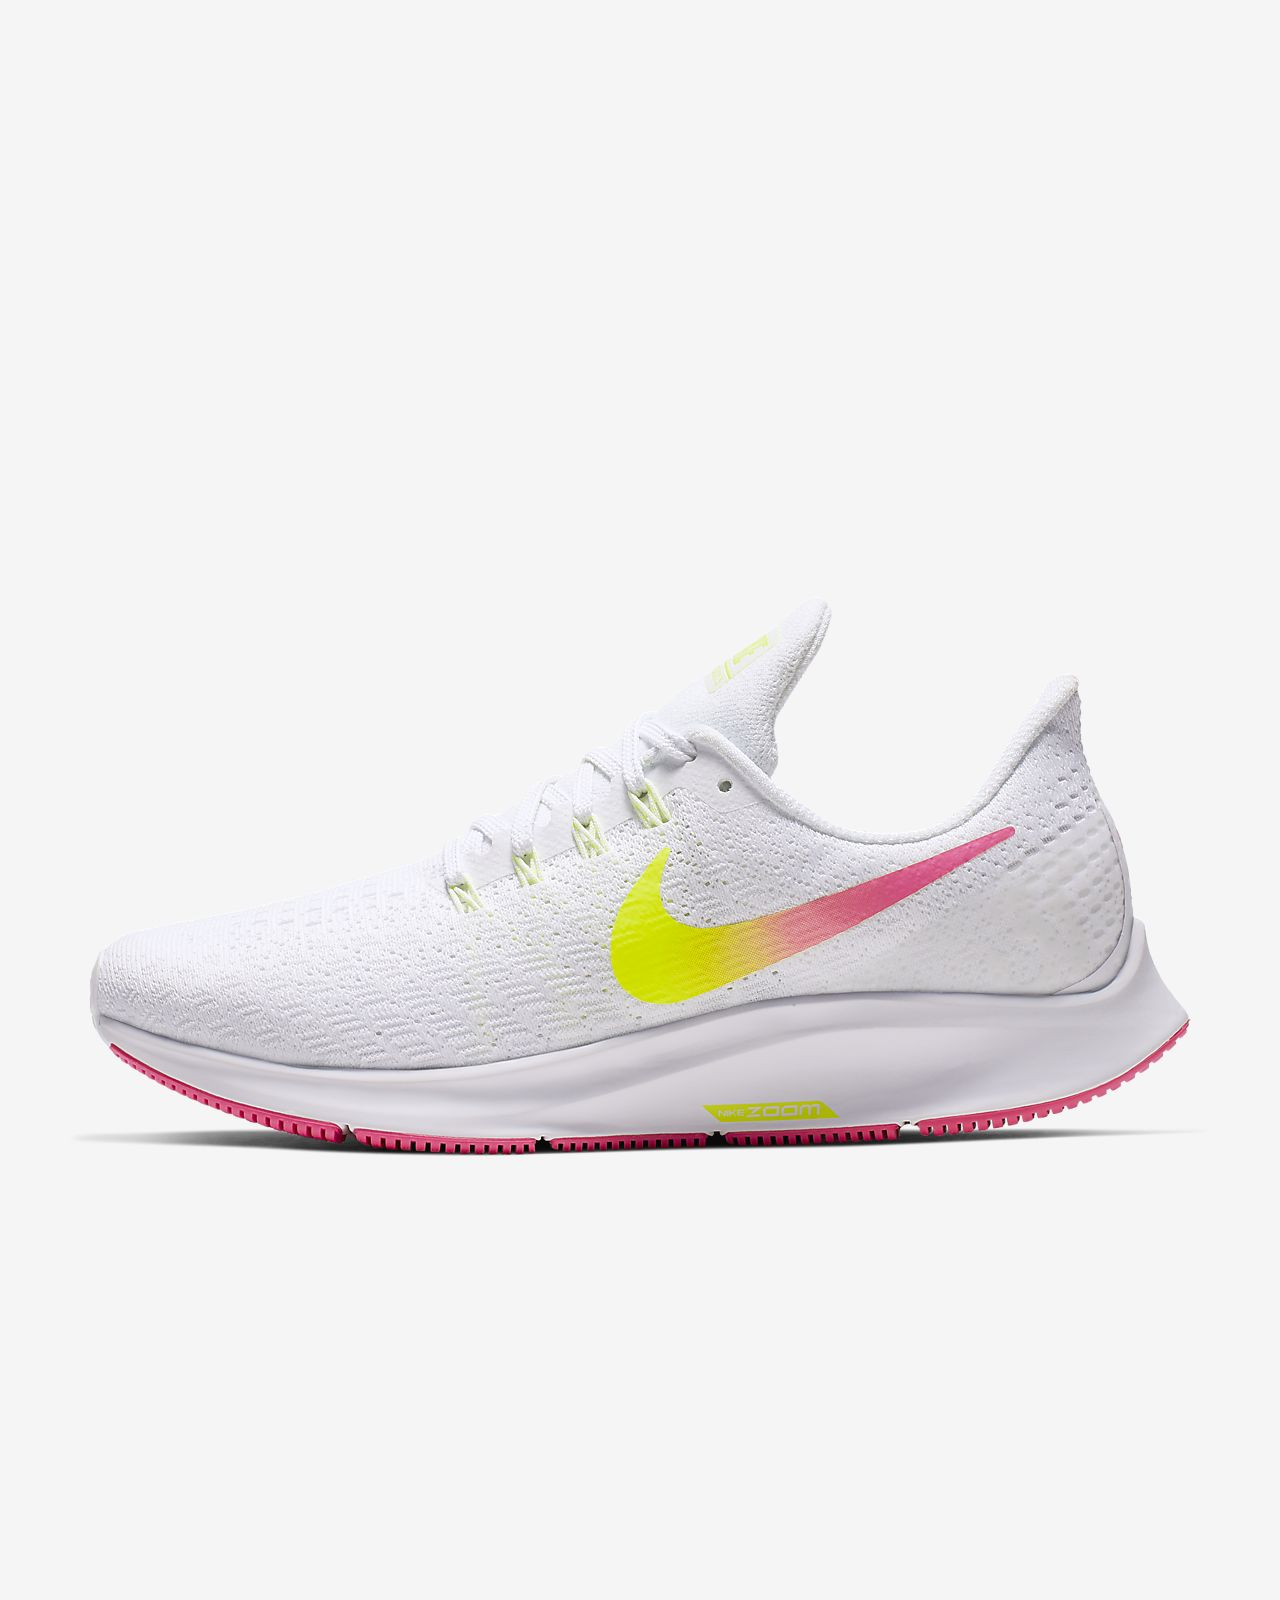 1ace2e7ea11 Nike Air Zoom Pegasus 35 Women s Running Shoe. Nike.com CH